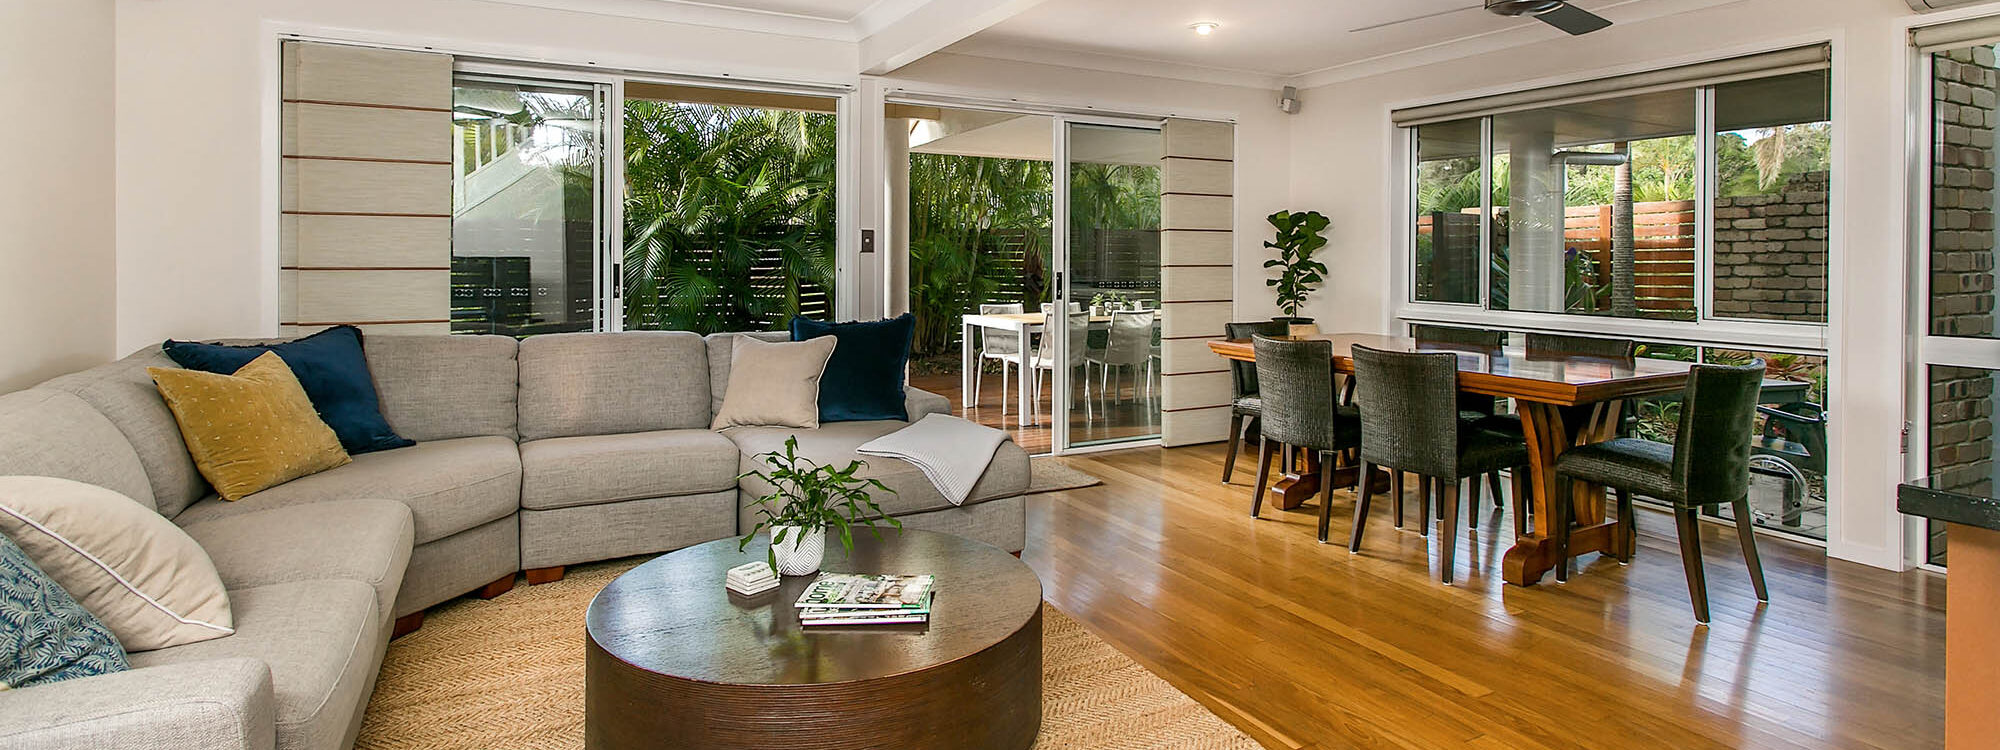 Tradewinds 4 - Clarkes Beach - Living Dining